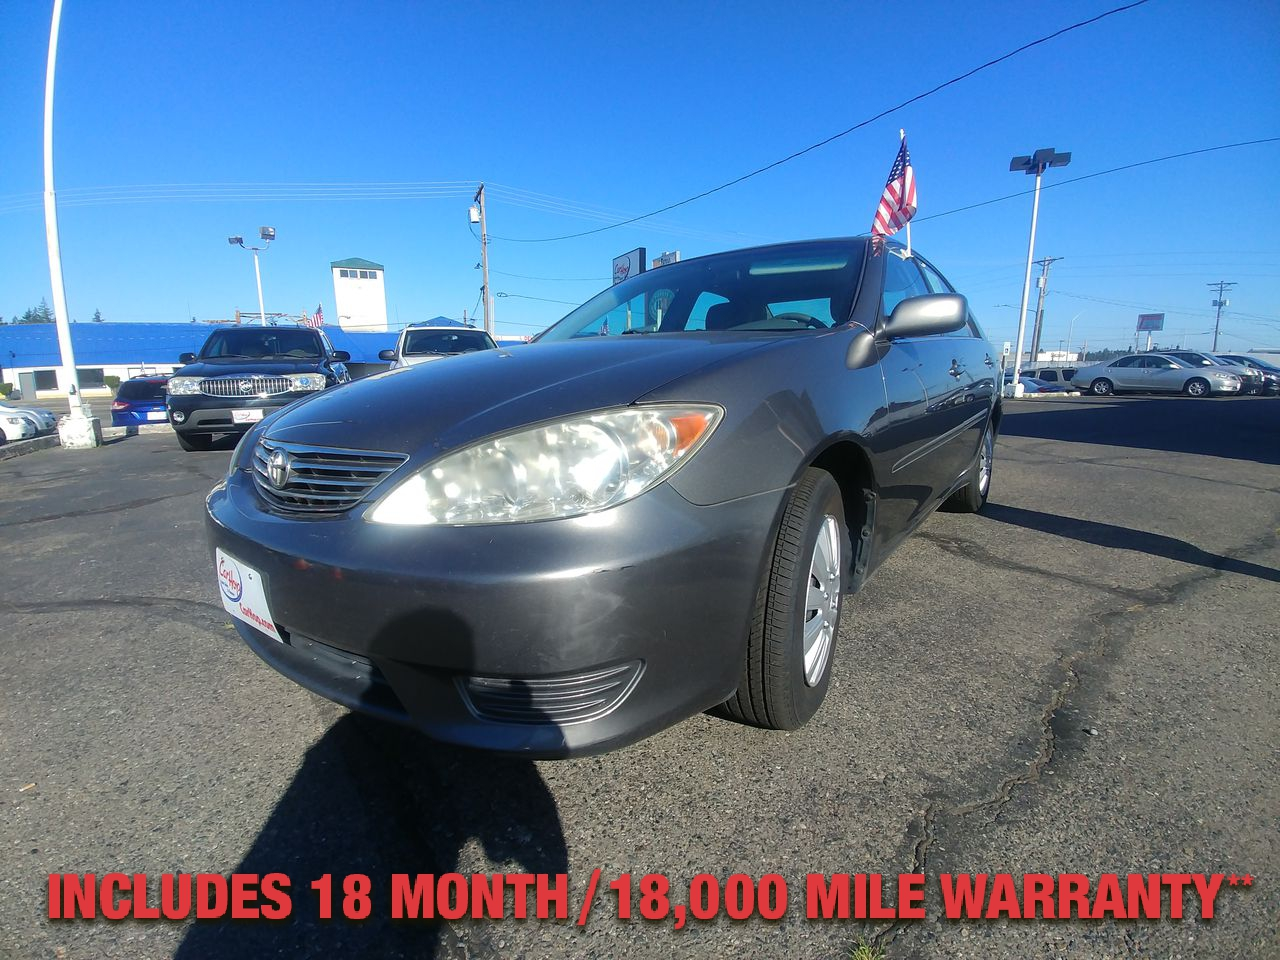 Pre-Owned 2005 TOYOTA CAMRY LE Sedan 4